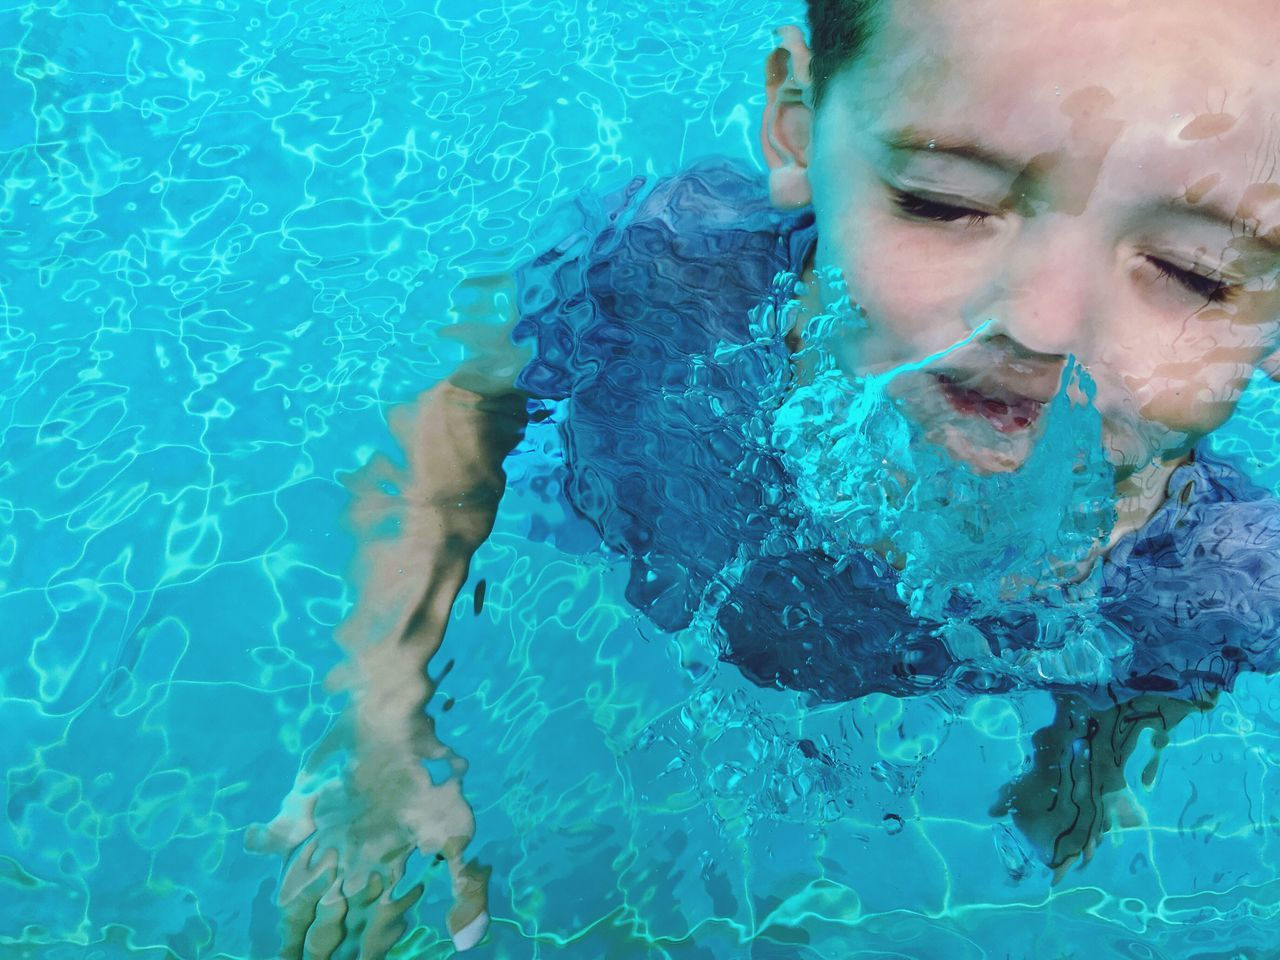 swimming pool, water, real people, one person, young adult, leisure activity, lifestyles, young women, front view, day, outdoors, beautiful woman, headshot, blue, underwater, swimming, portrait, close-up, people